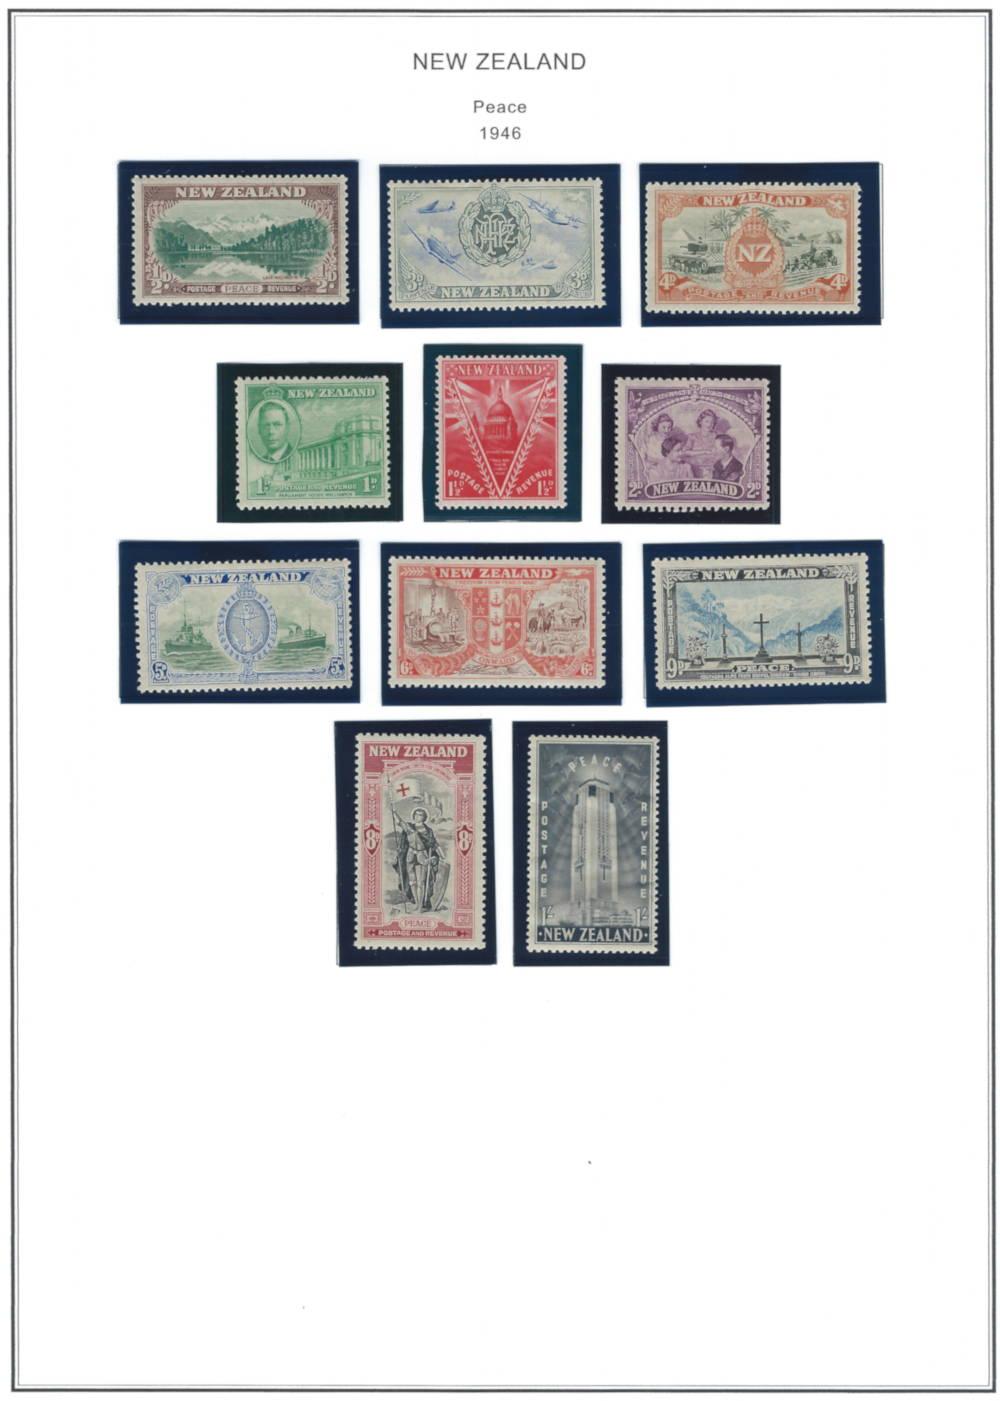 The 1946 New Zealand Peace Issue Stamp Series